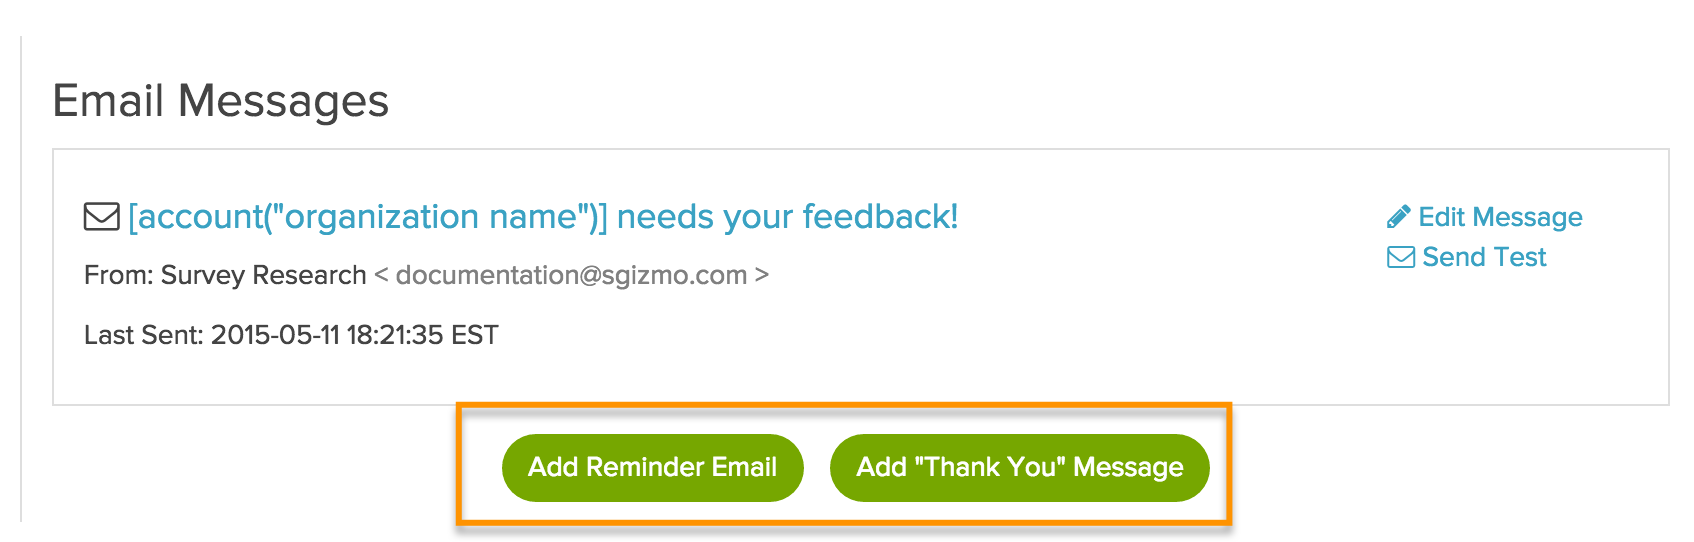 Send A Reminder Or Thank You Message Surveygizmo Help